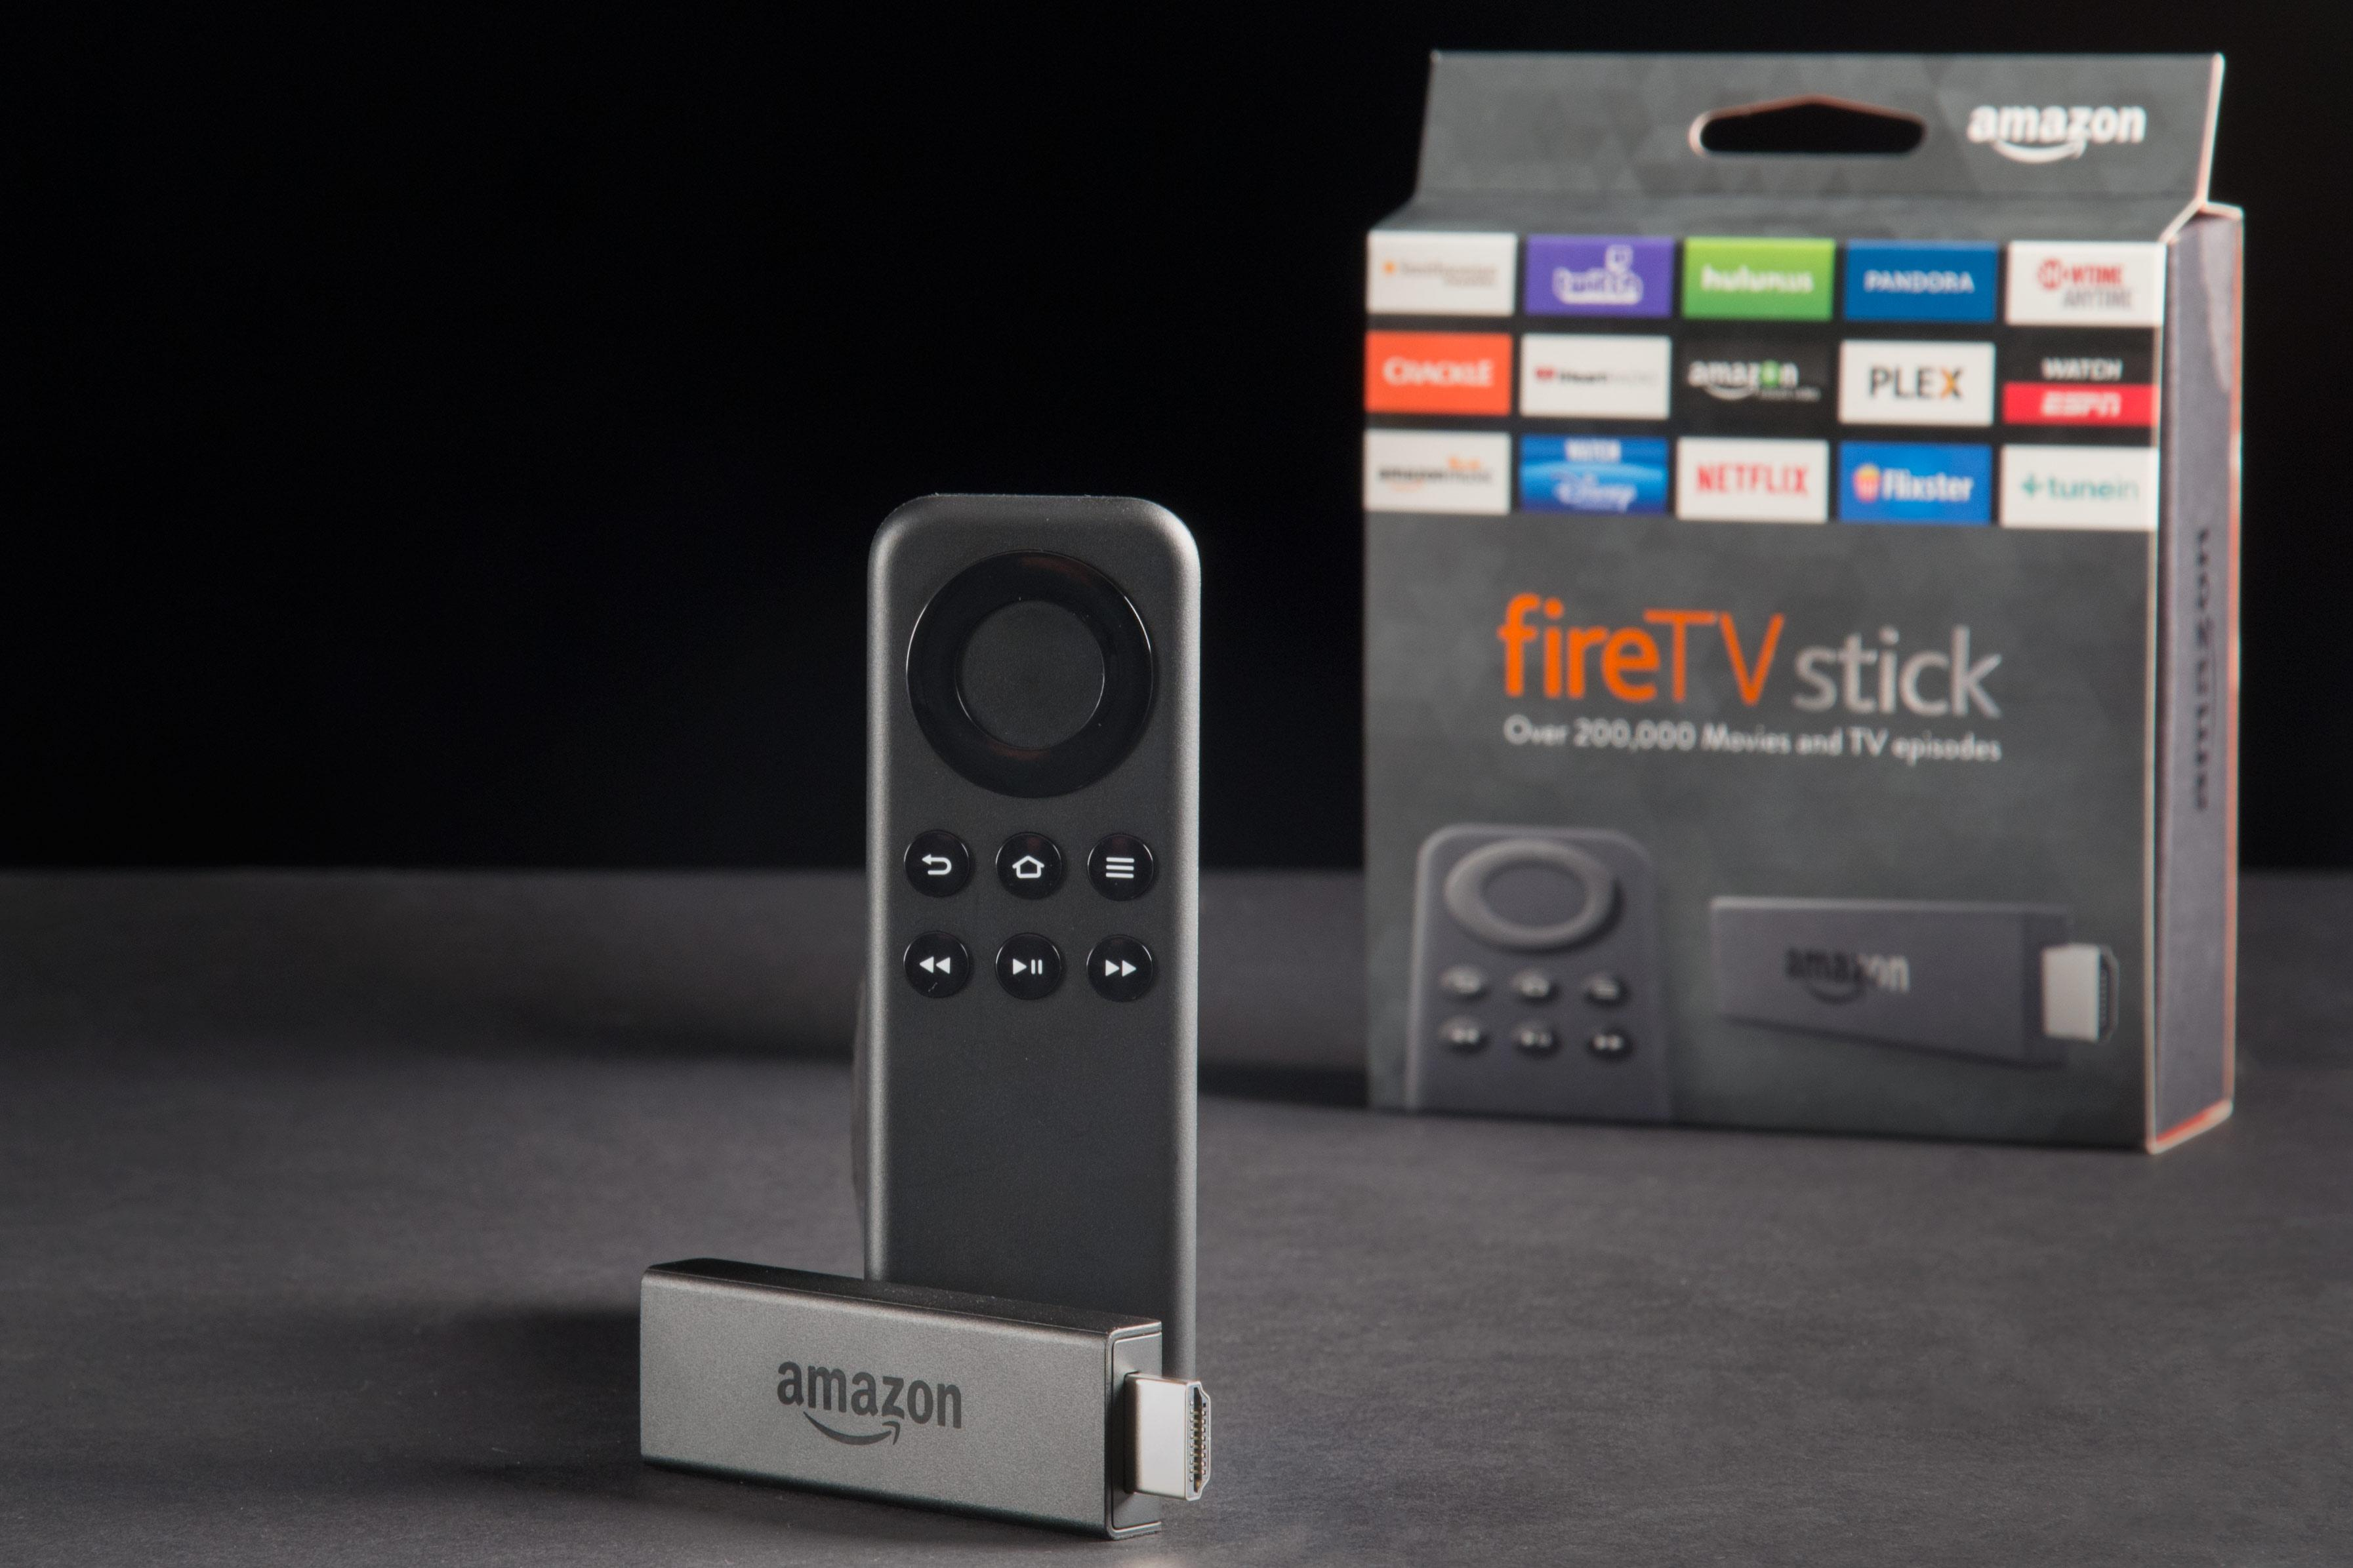 Details about Amazon Fire TV Stick Kodi 15.2 THE BEAST 3pm  #B34418 3587 2391